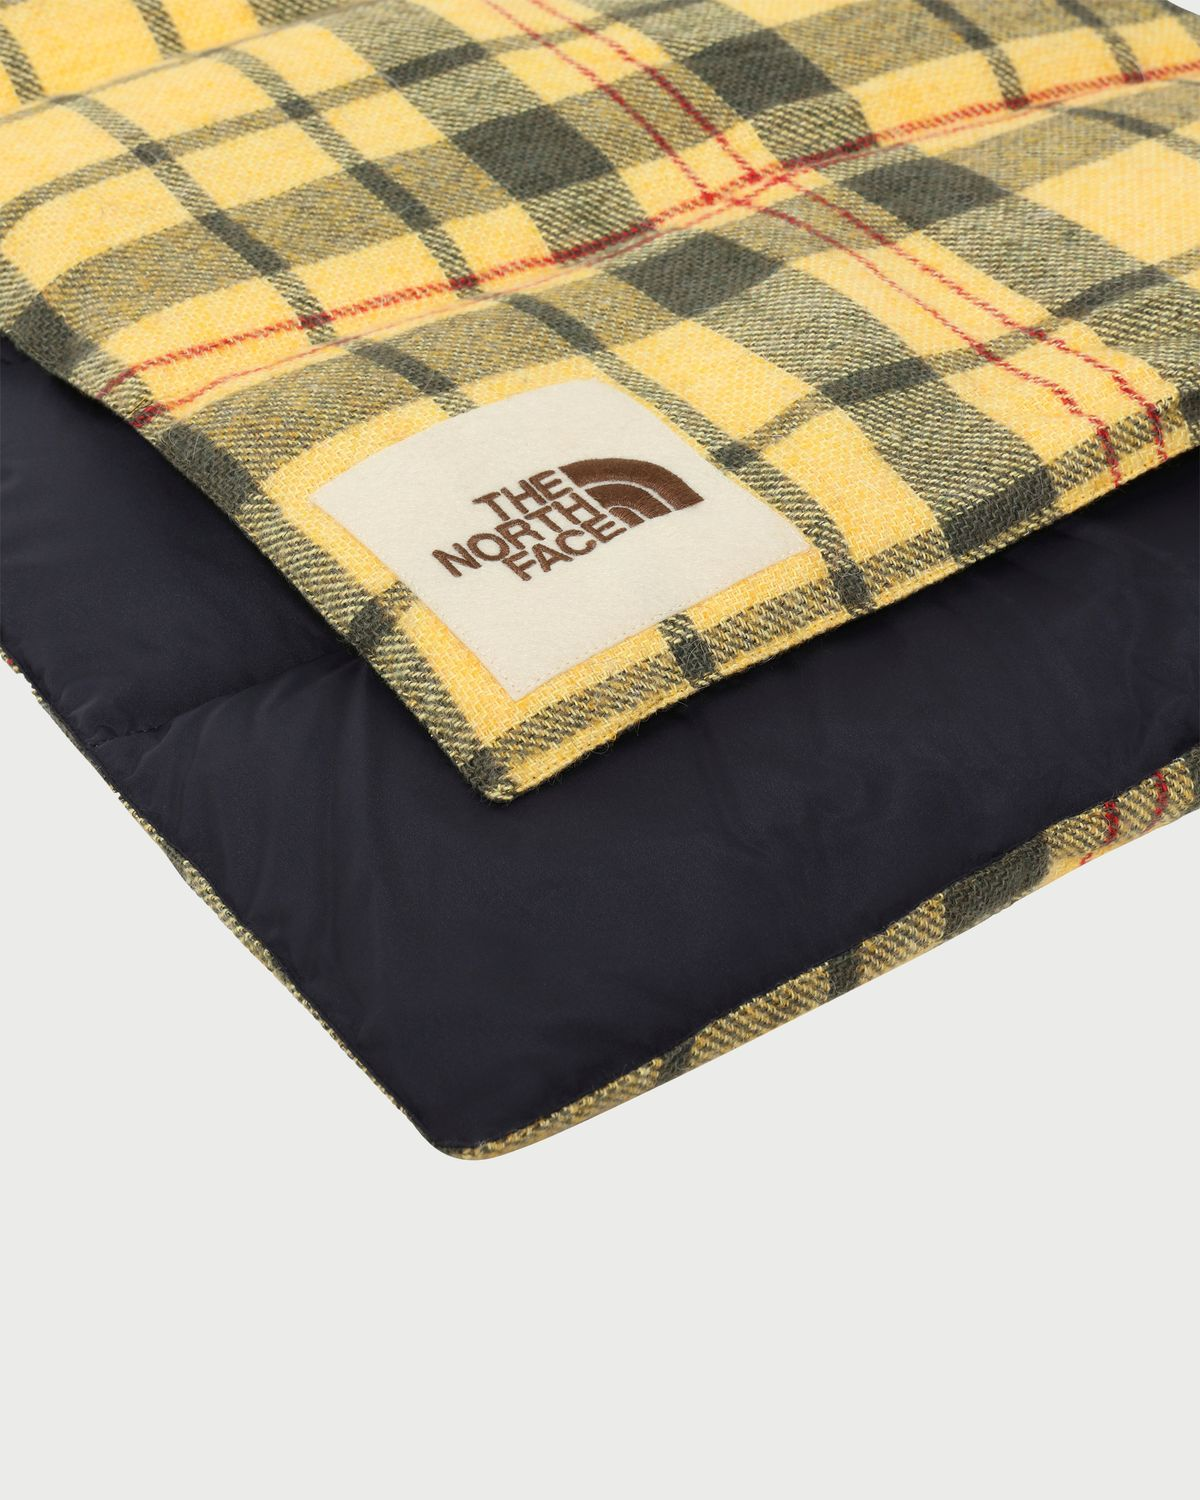 The North Face Brown Label - Insulated Scarf Summer Gold Heritage Unisex - Image 2